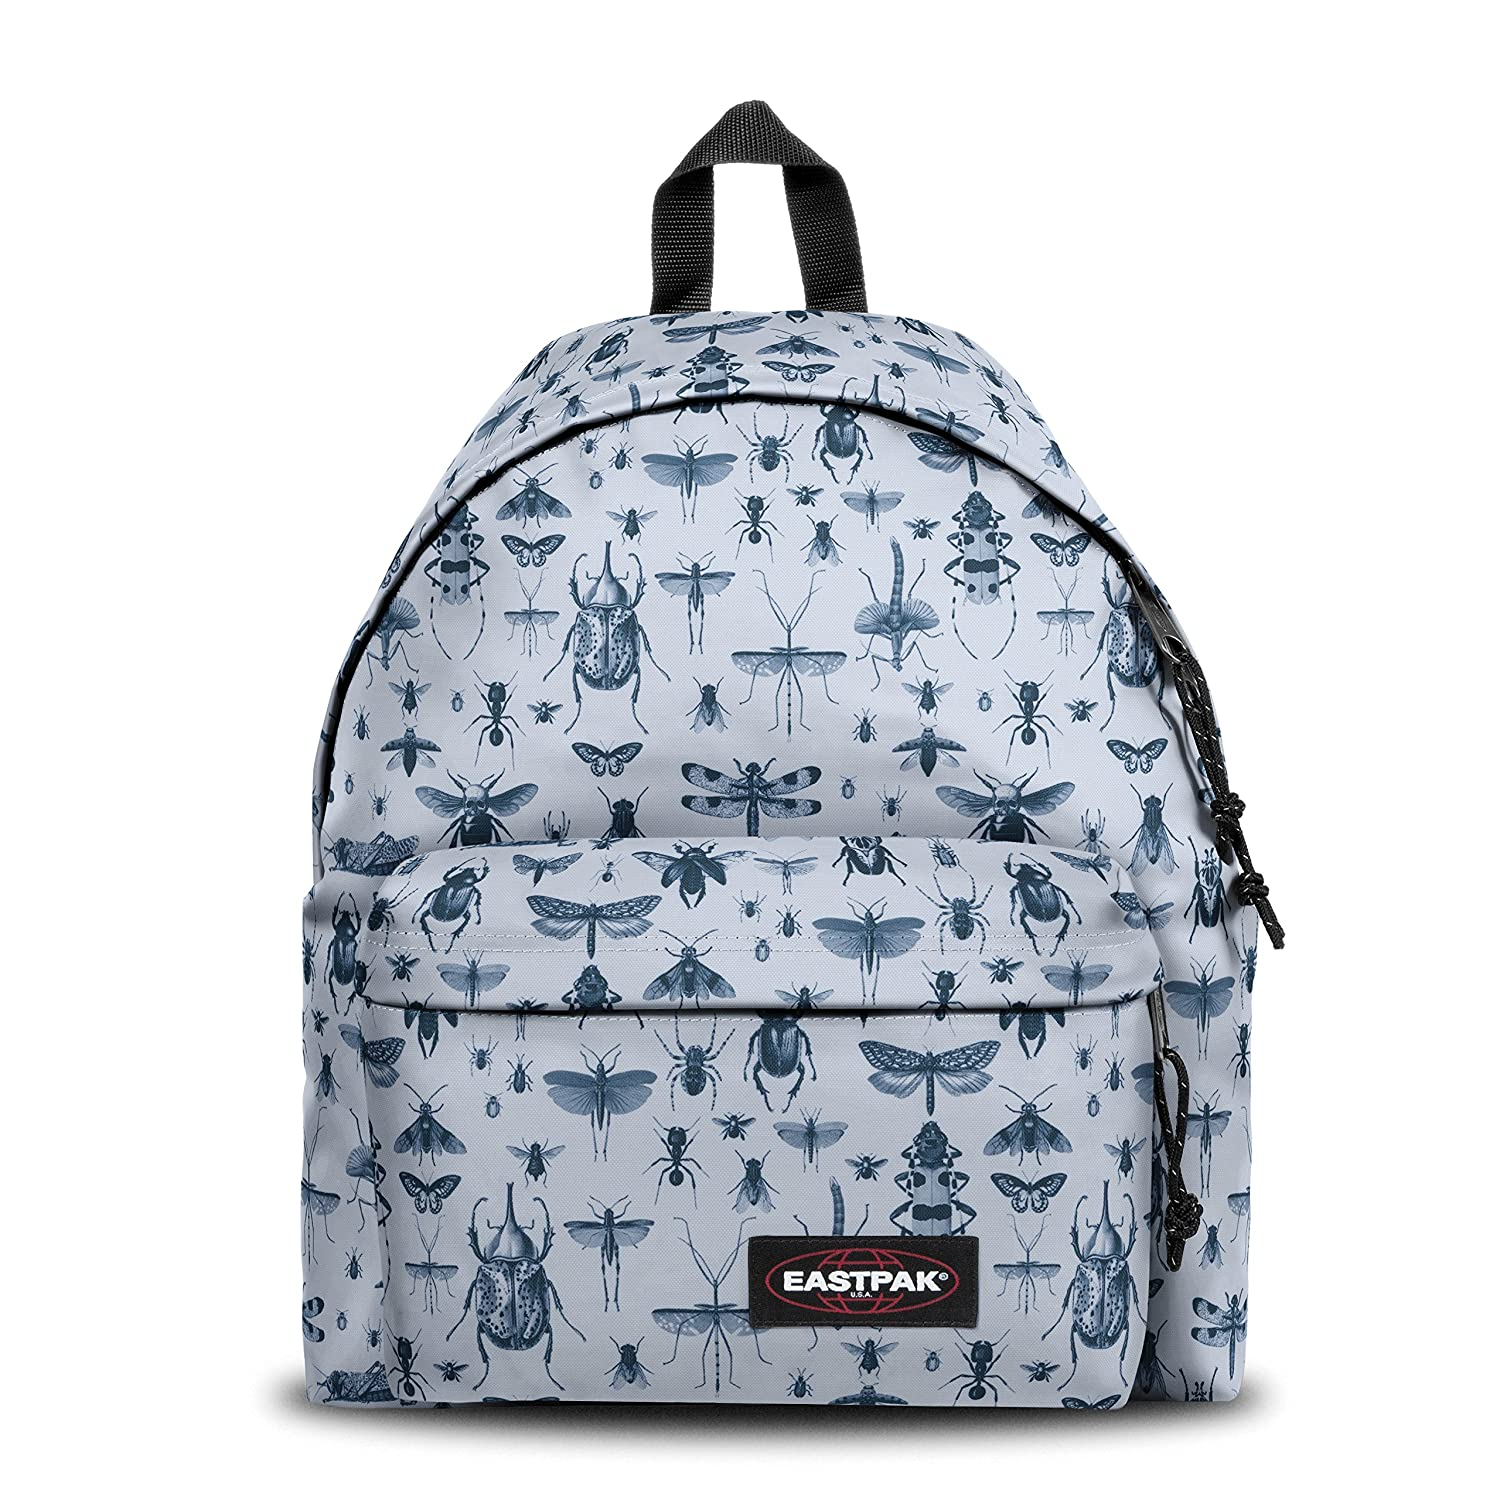 Eastpak Sac /à dos Padded Bugged Light